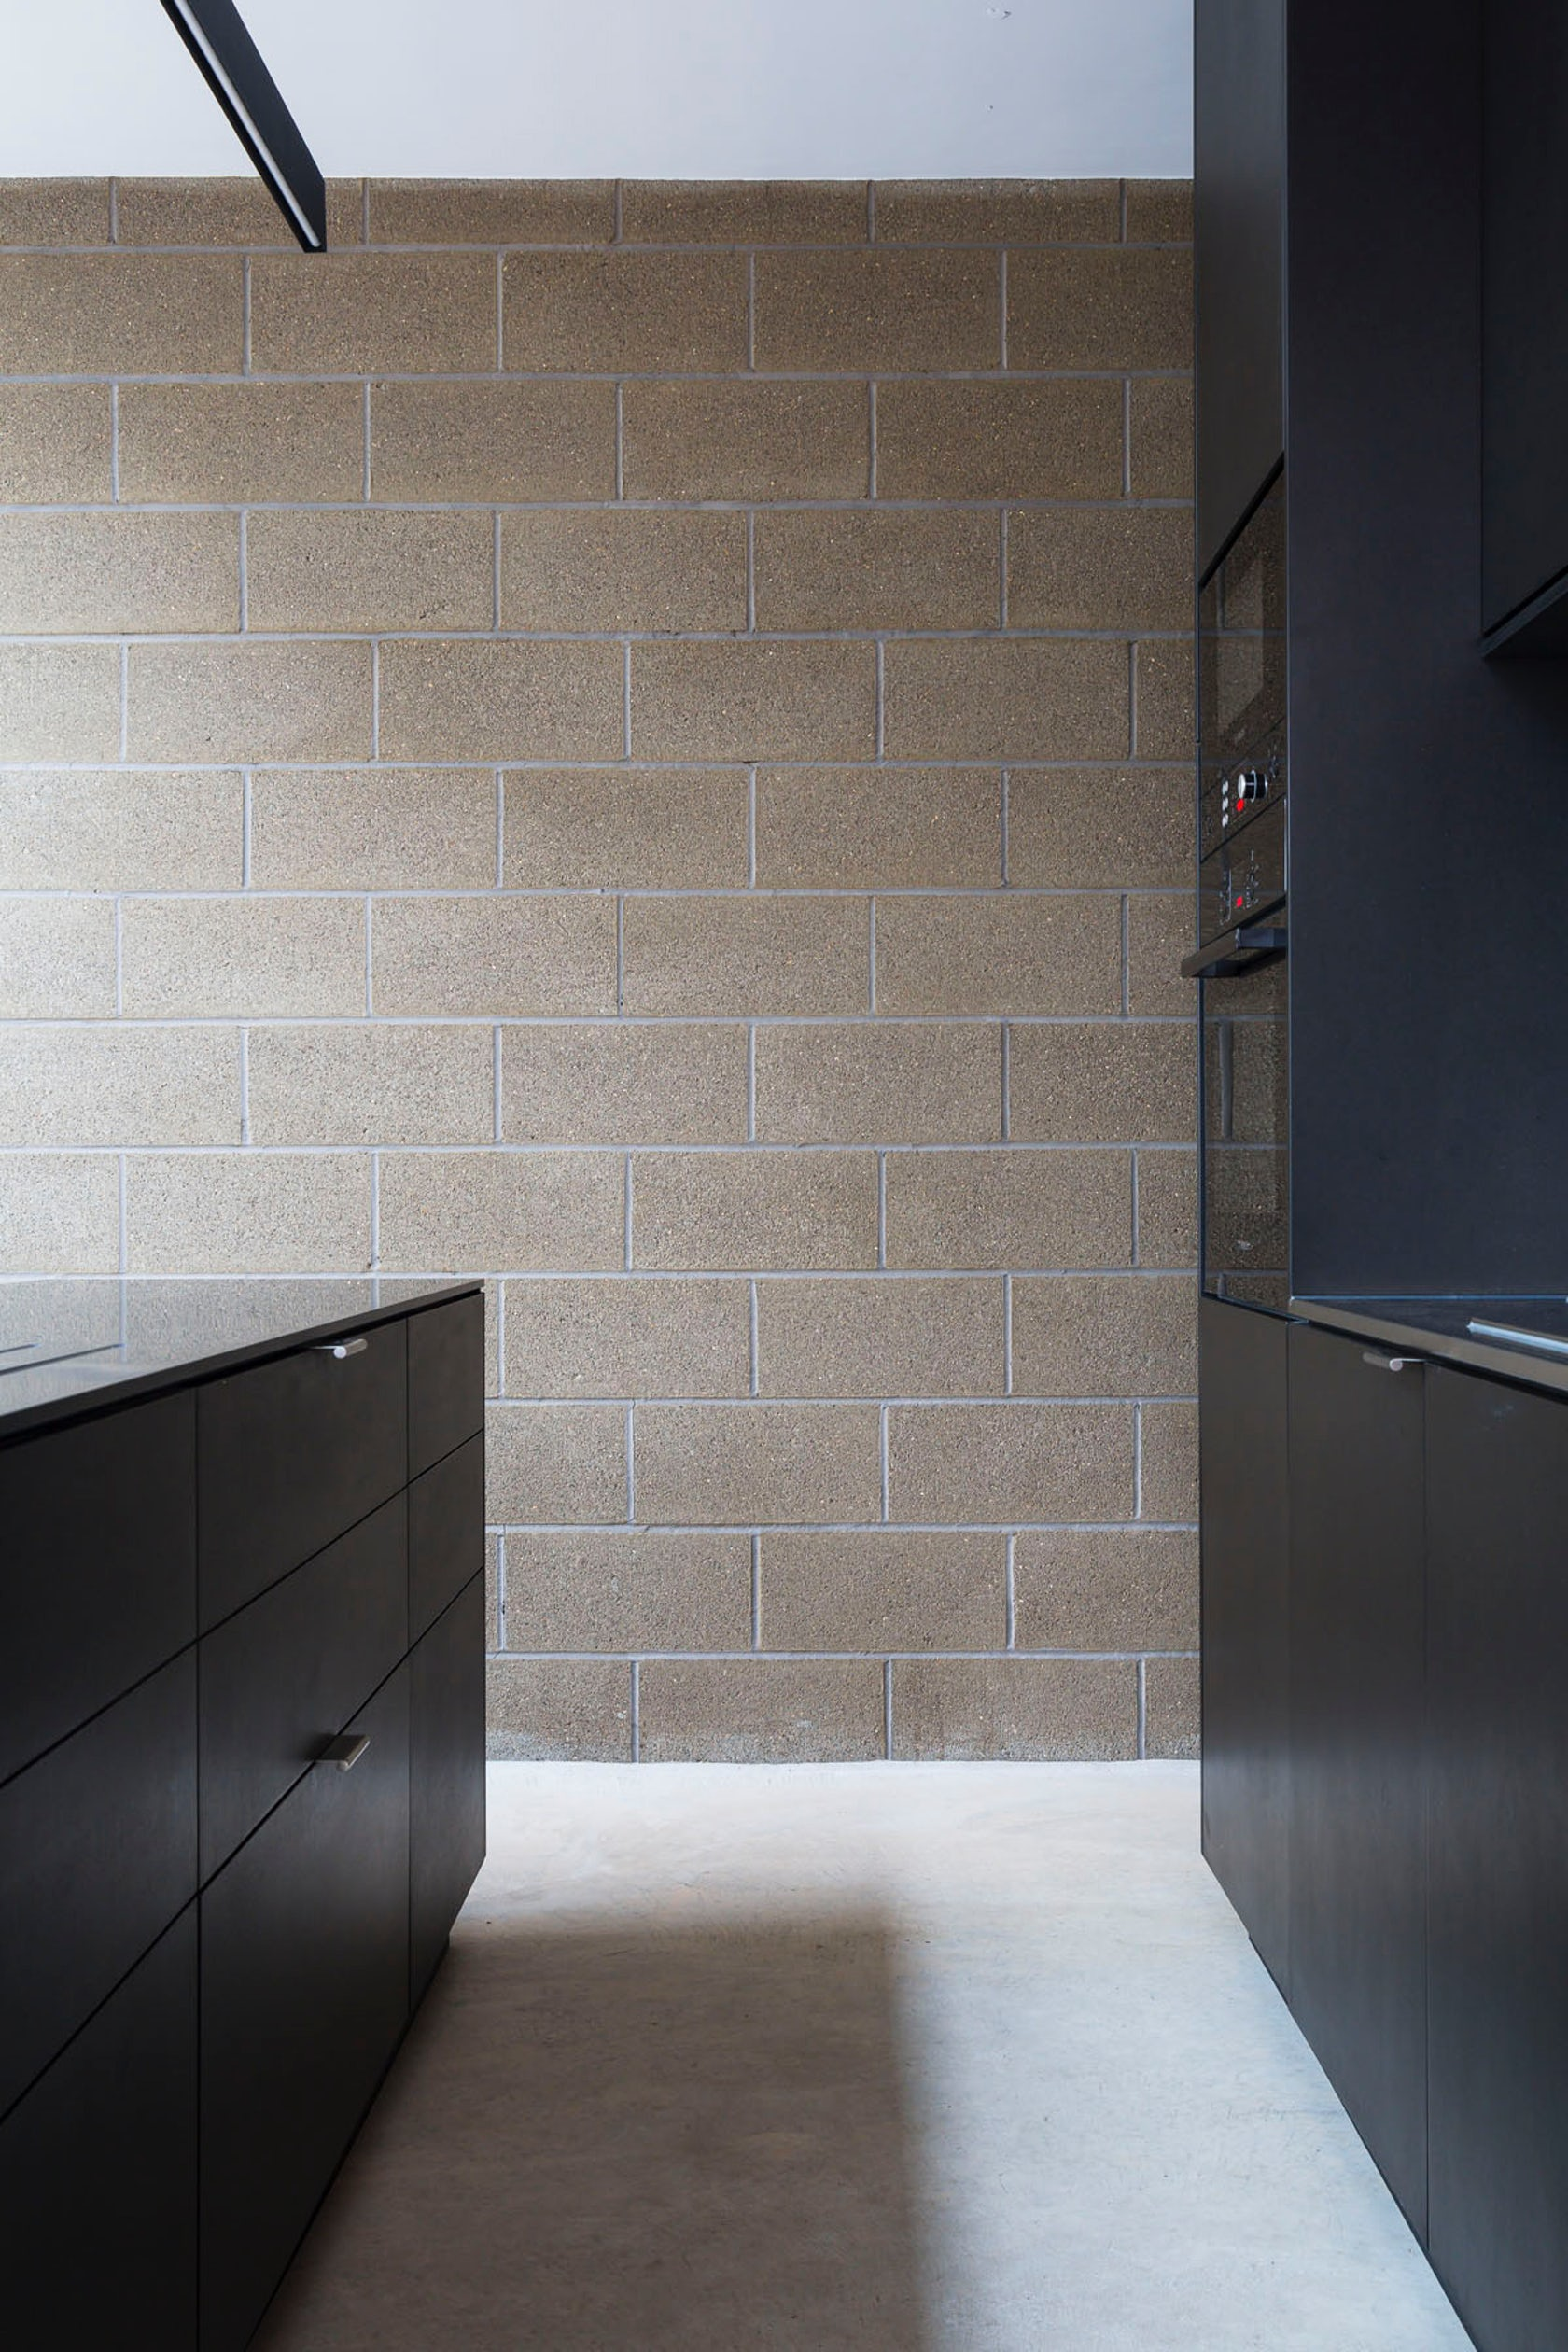 Block house architizer - Interior cinder block wall covering ...